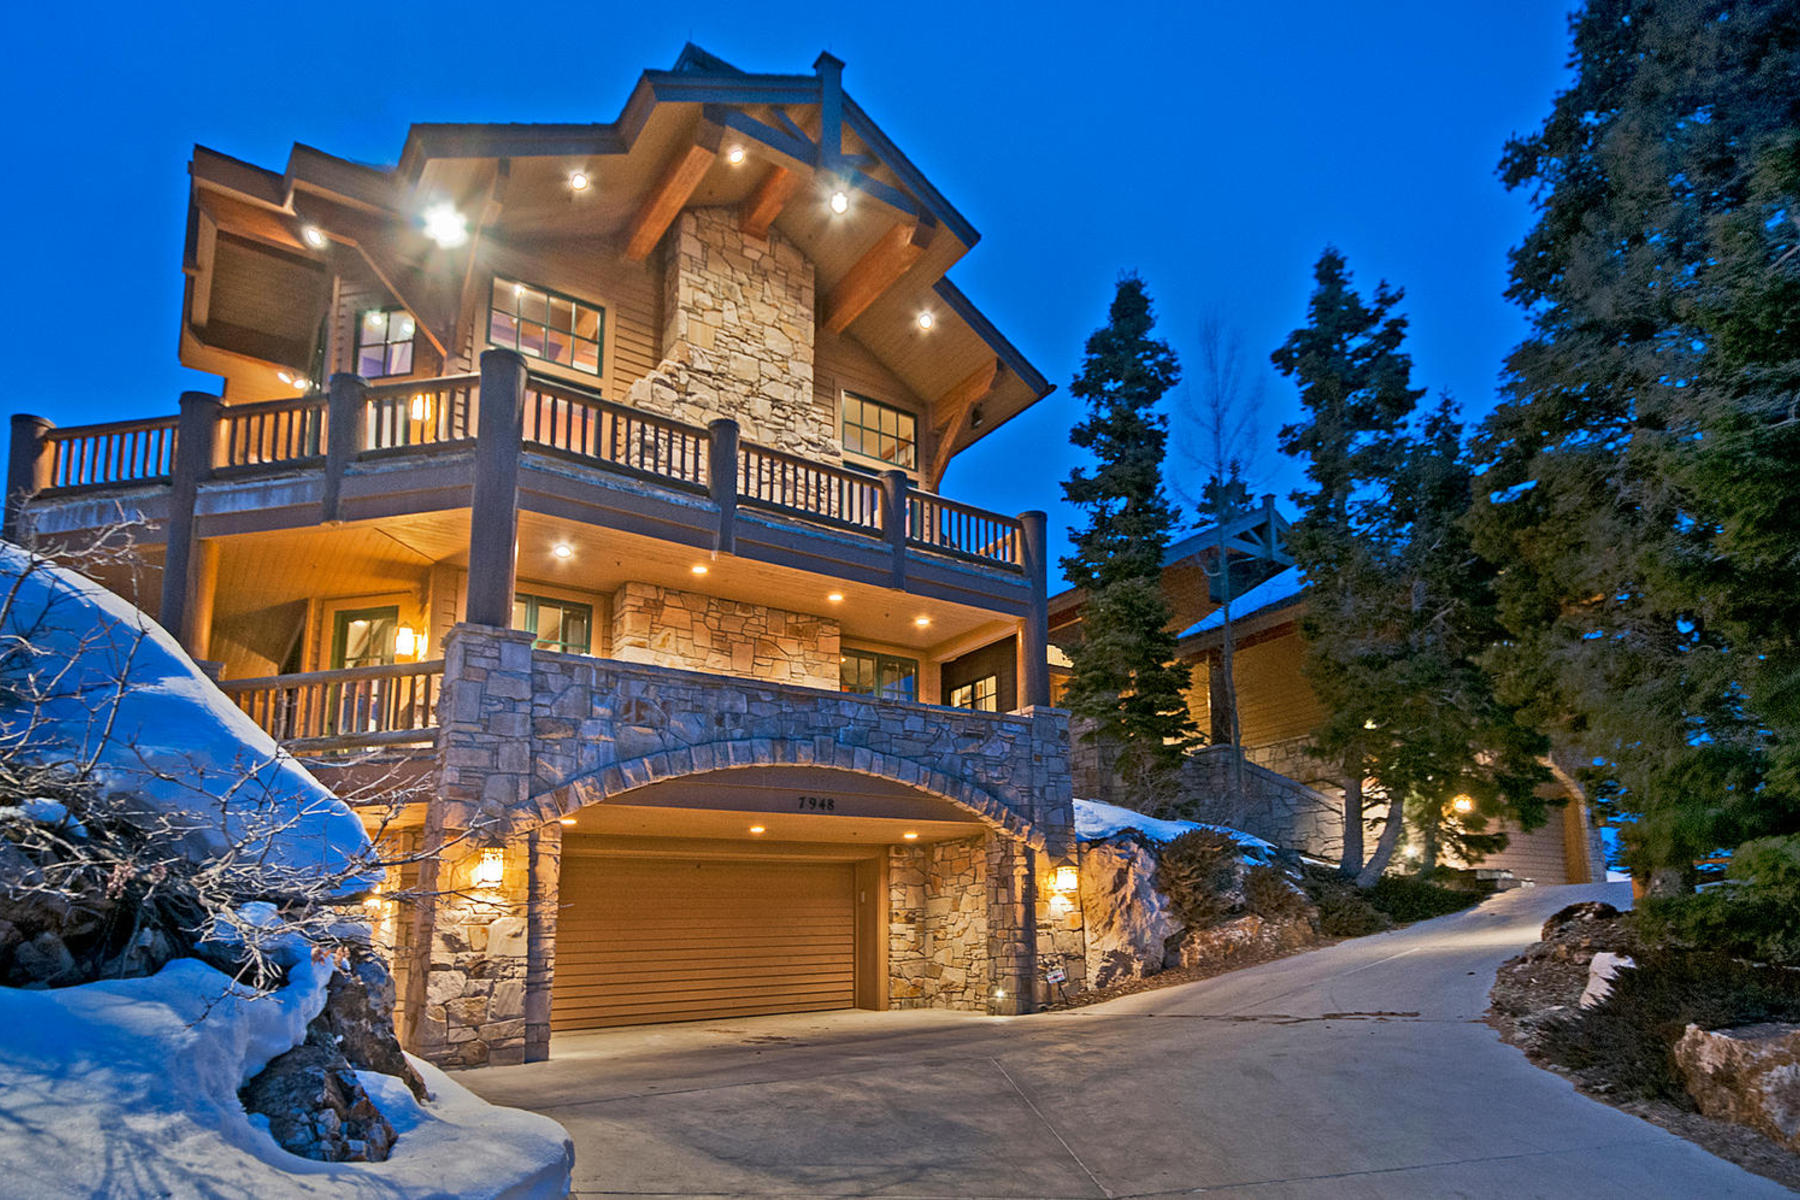 Single Family Home for Sale at Timeless Deer Valley Ski-In Ski-out Mountain Retreat 7948 Red Tail Ct Park City, Utah 84060 United States